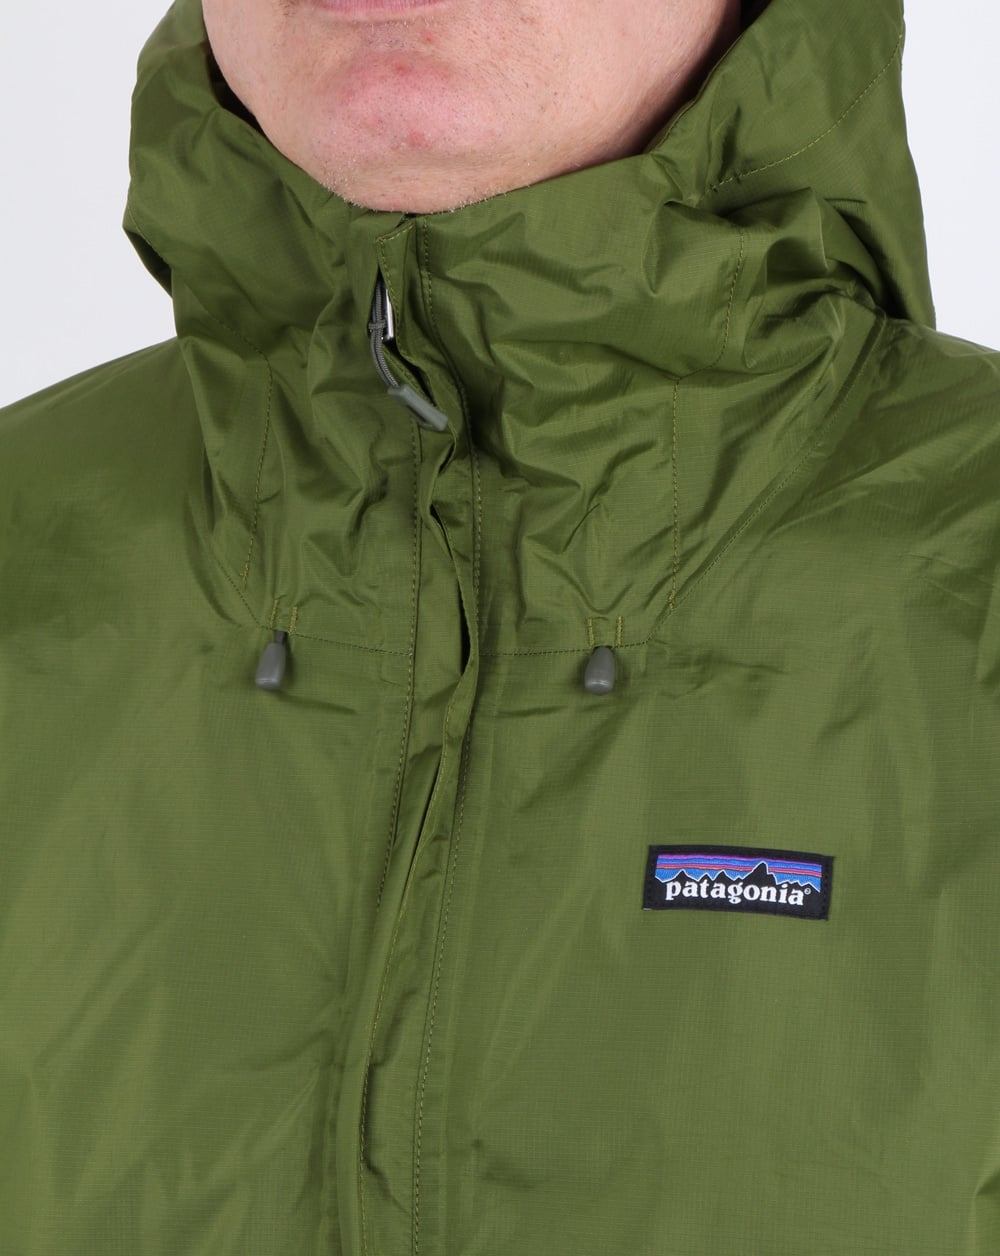 Patagonia Torrentshell Pullover Sprouted Green 1620eb5fe